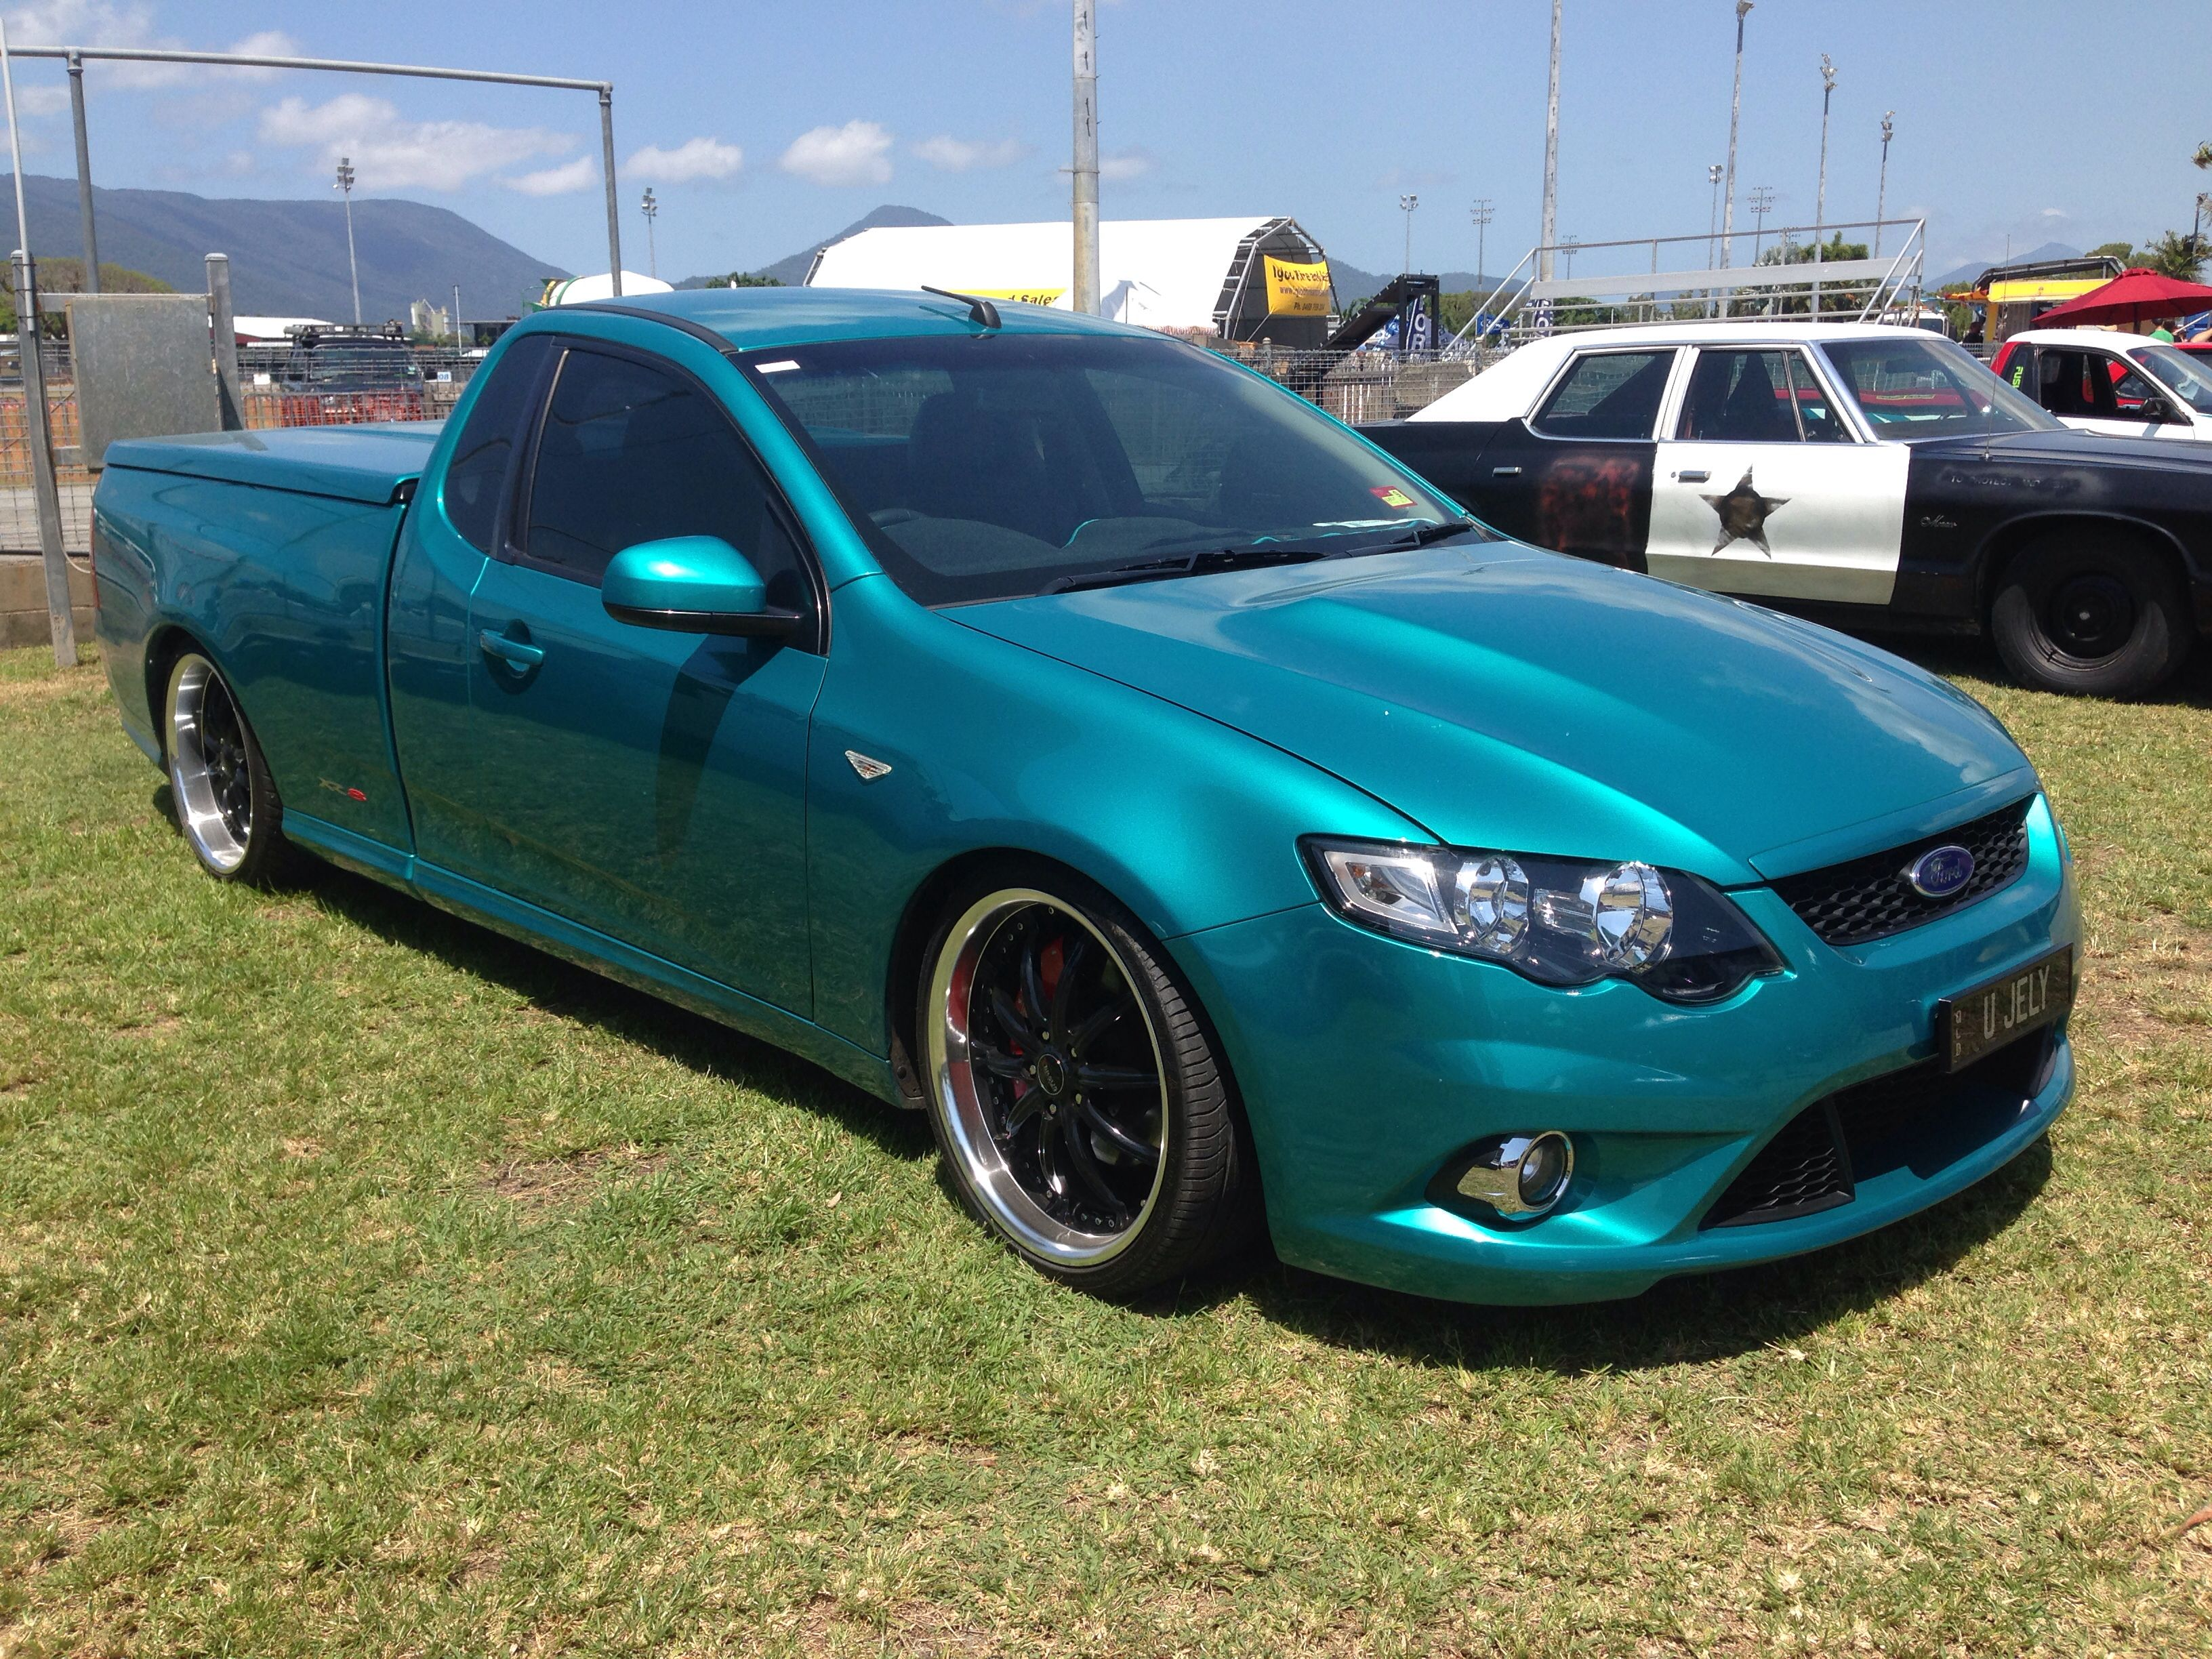 Ford Fg Xr8 Falcon Ute Ford Trucks Aussie Muscle Cars Old School Cars